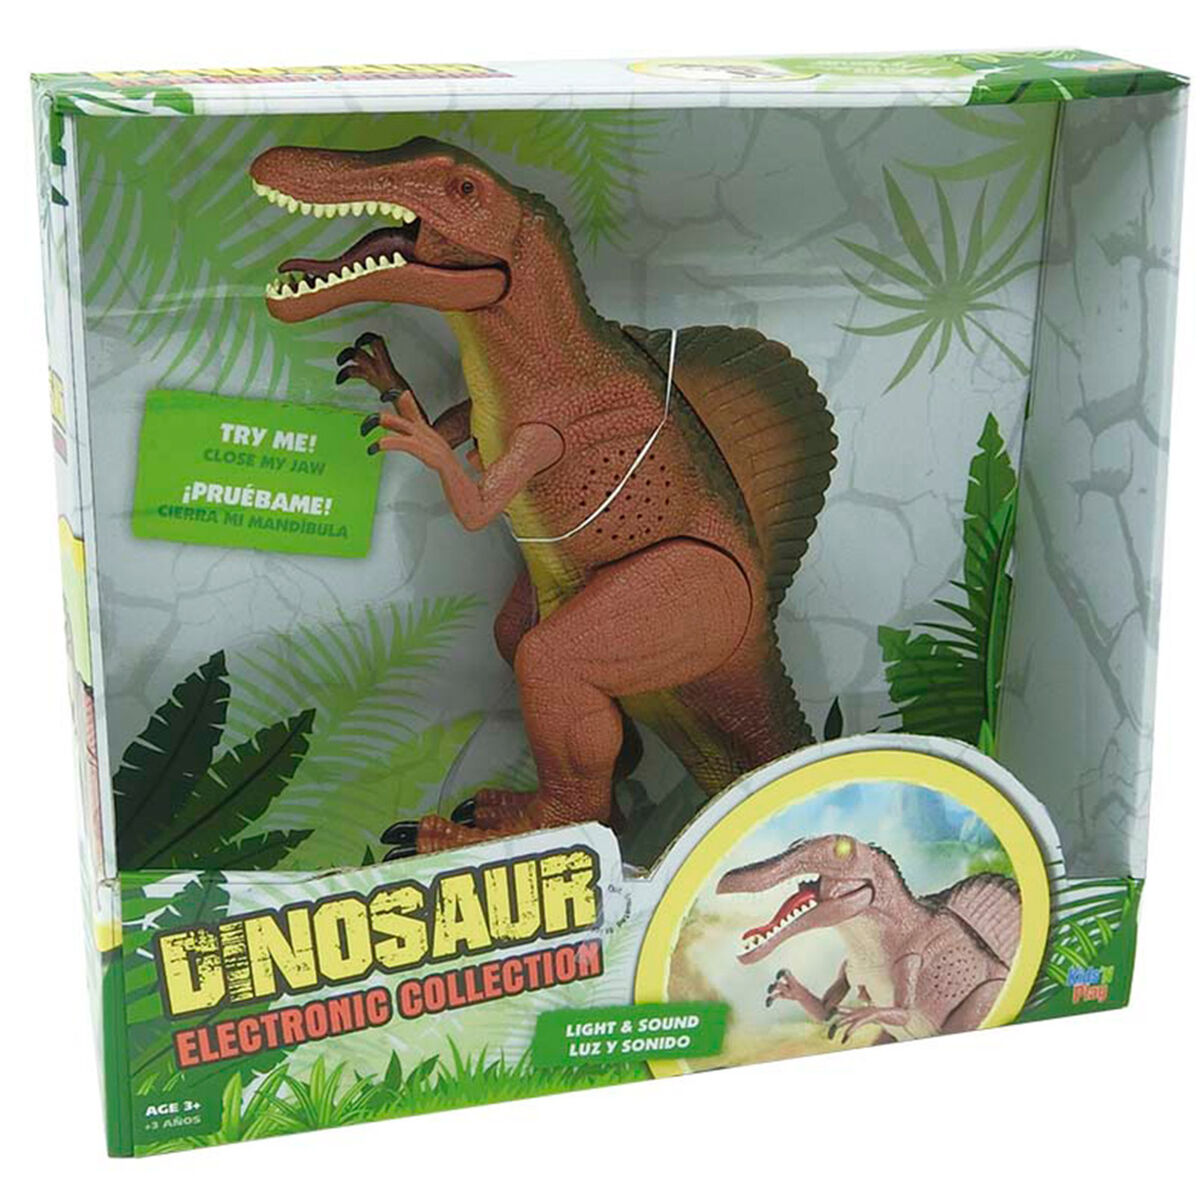 Dinosaurio Electronic Collection